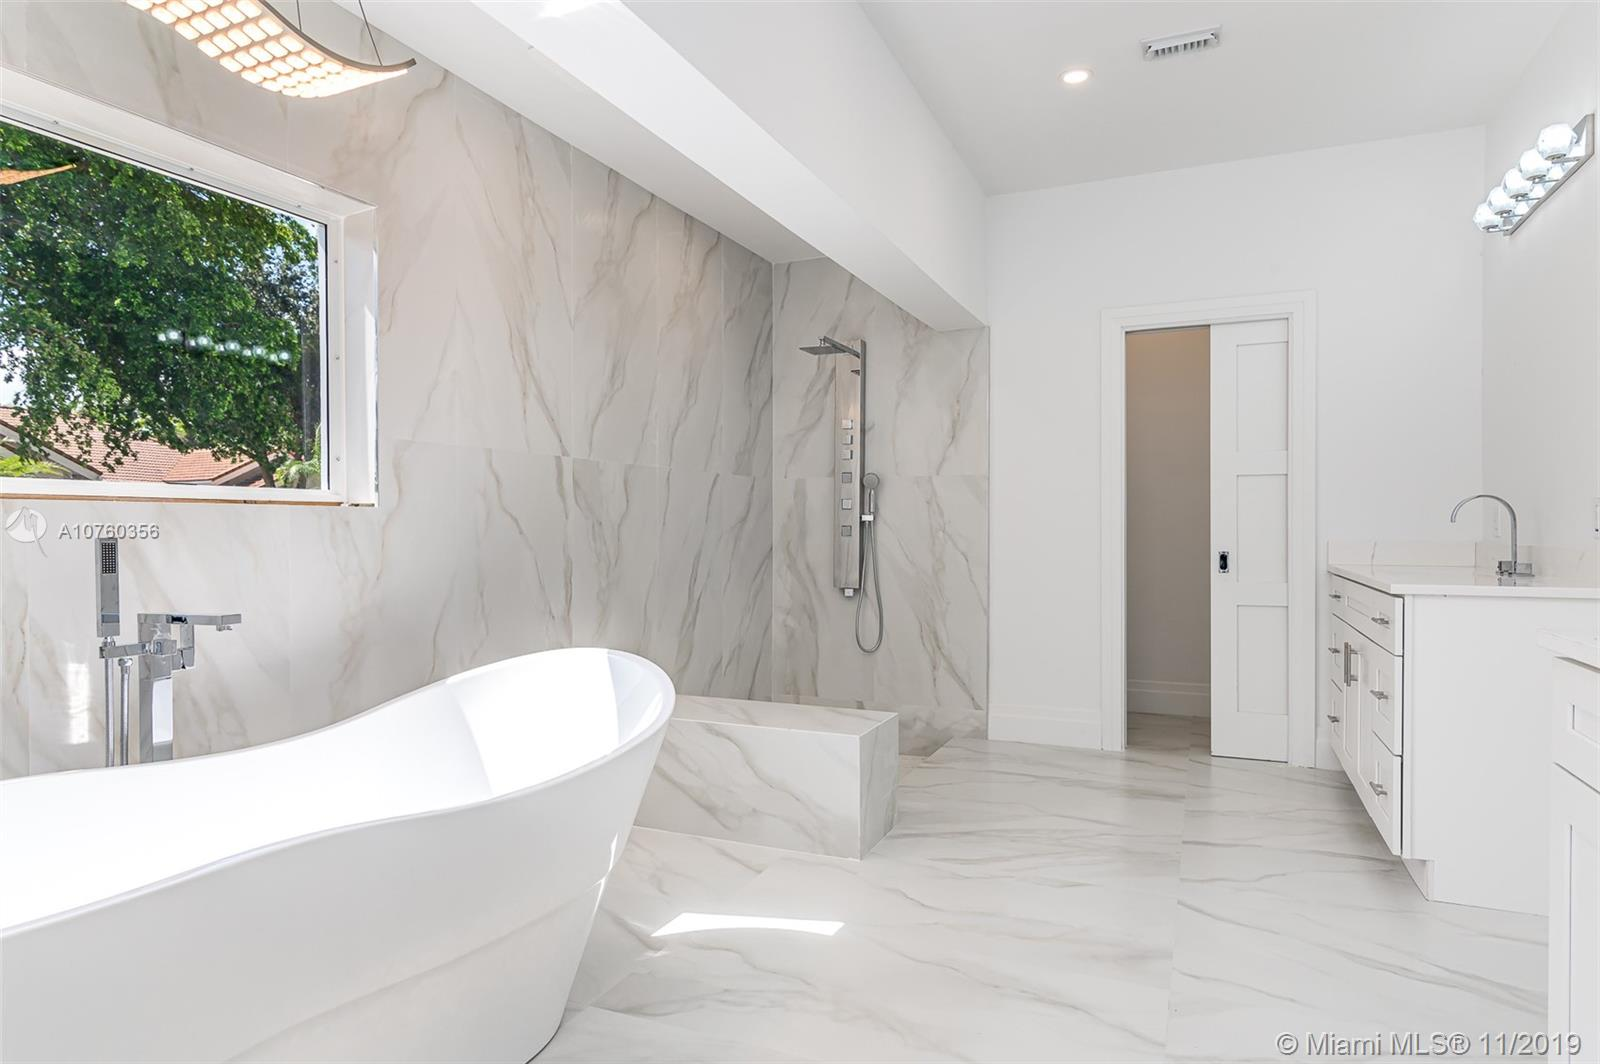 Stunning Designer Master Bathroom - Almost Complete... New Pics coming soon!